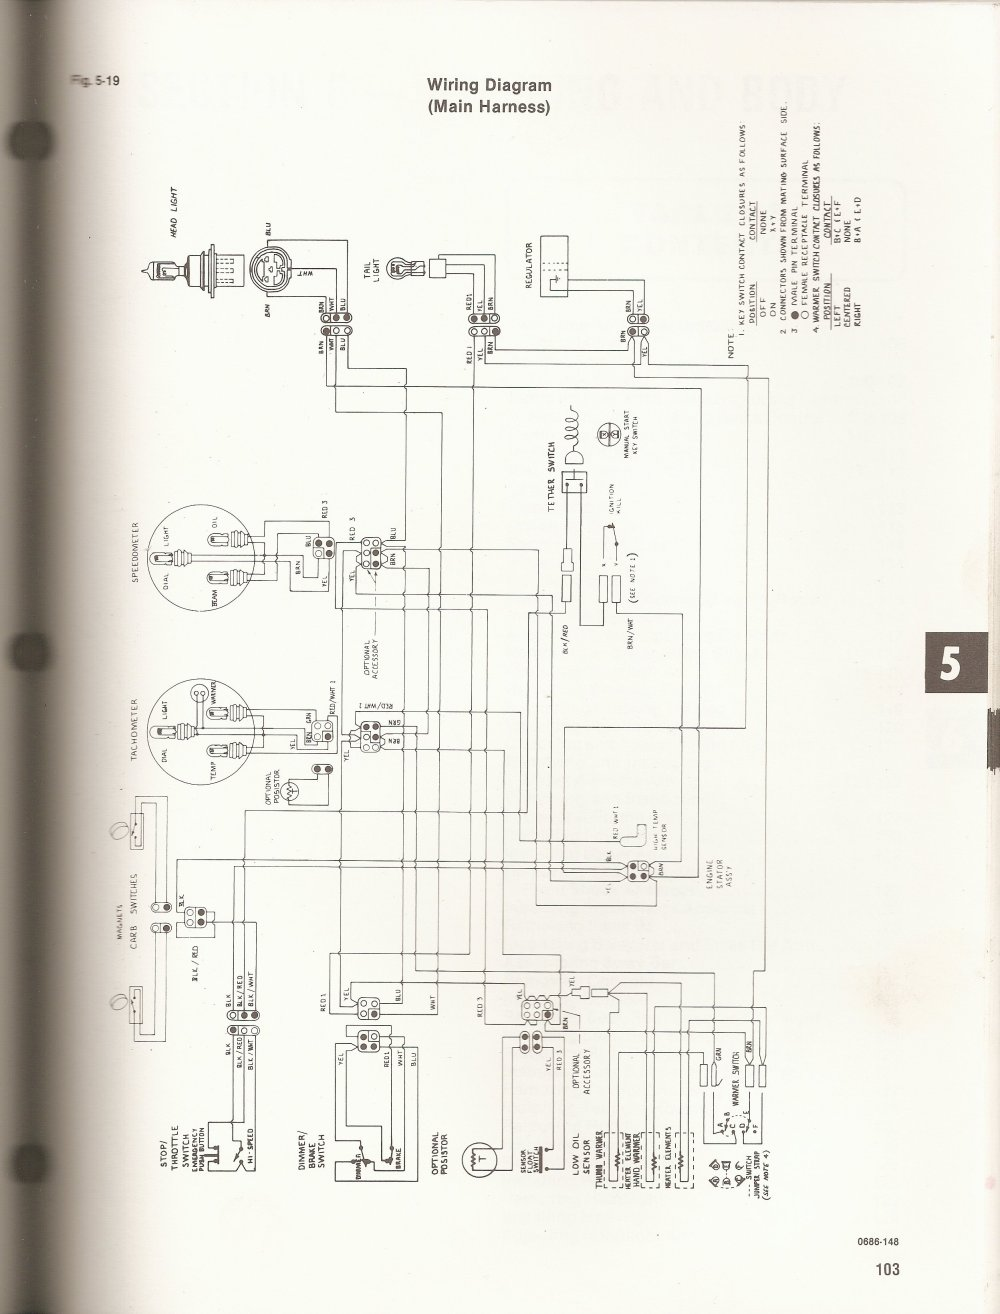 medium resolution of wildkat wiring diagram wiring diagram splitwiring diagram wildkat wiring diagram name wildcat wiring diagram data diagram